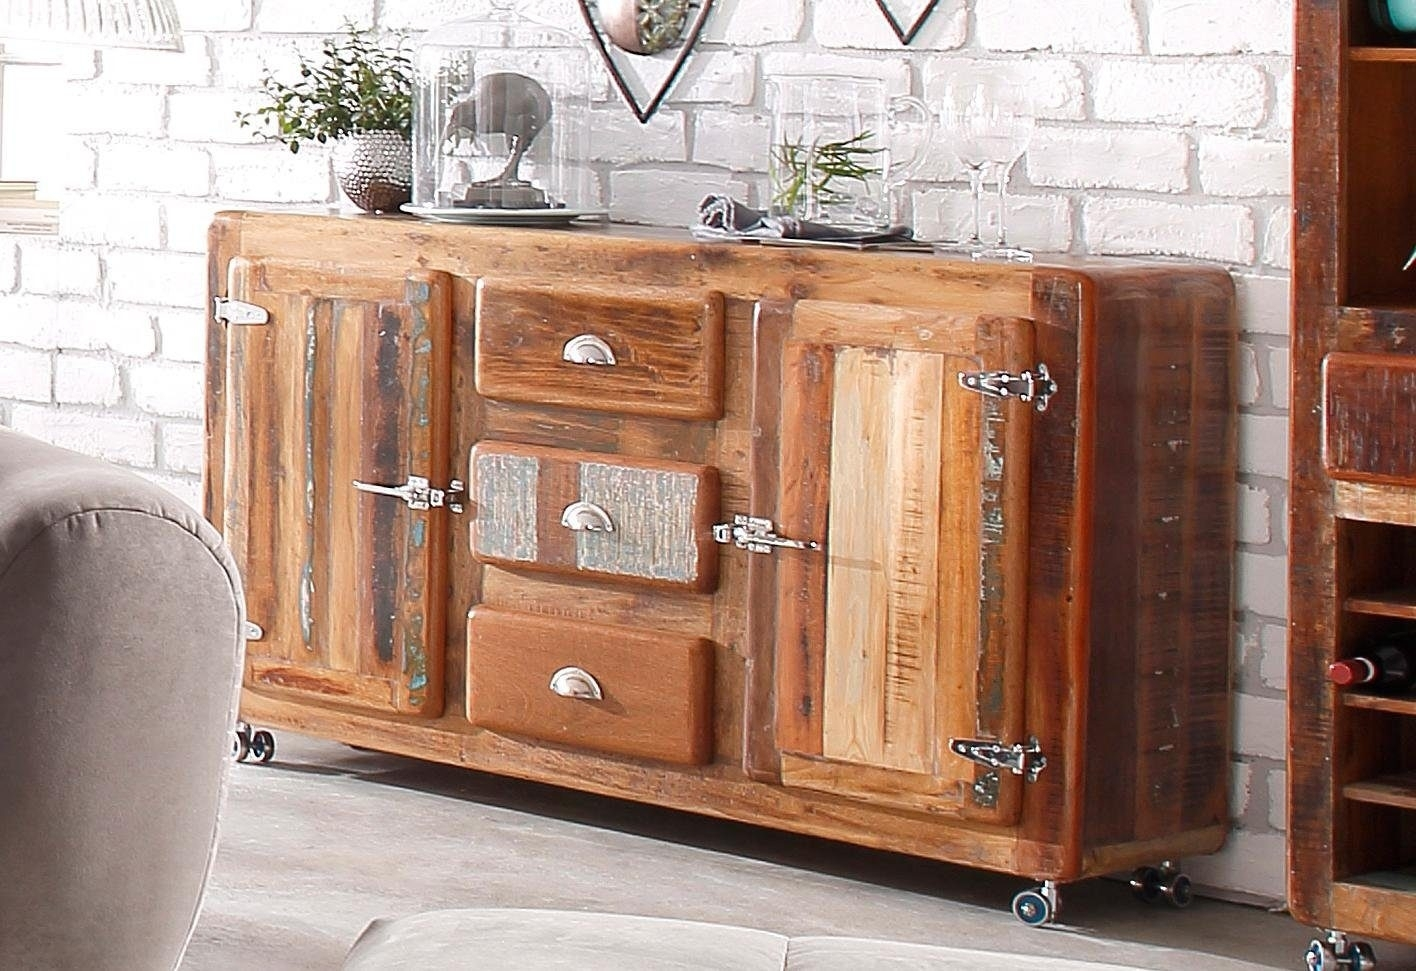 Sideboard 'fridge' - Mygermany intended for Reclaimed 3 Drawer Icebox Sideboards (Image 24 of 30)